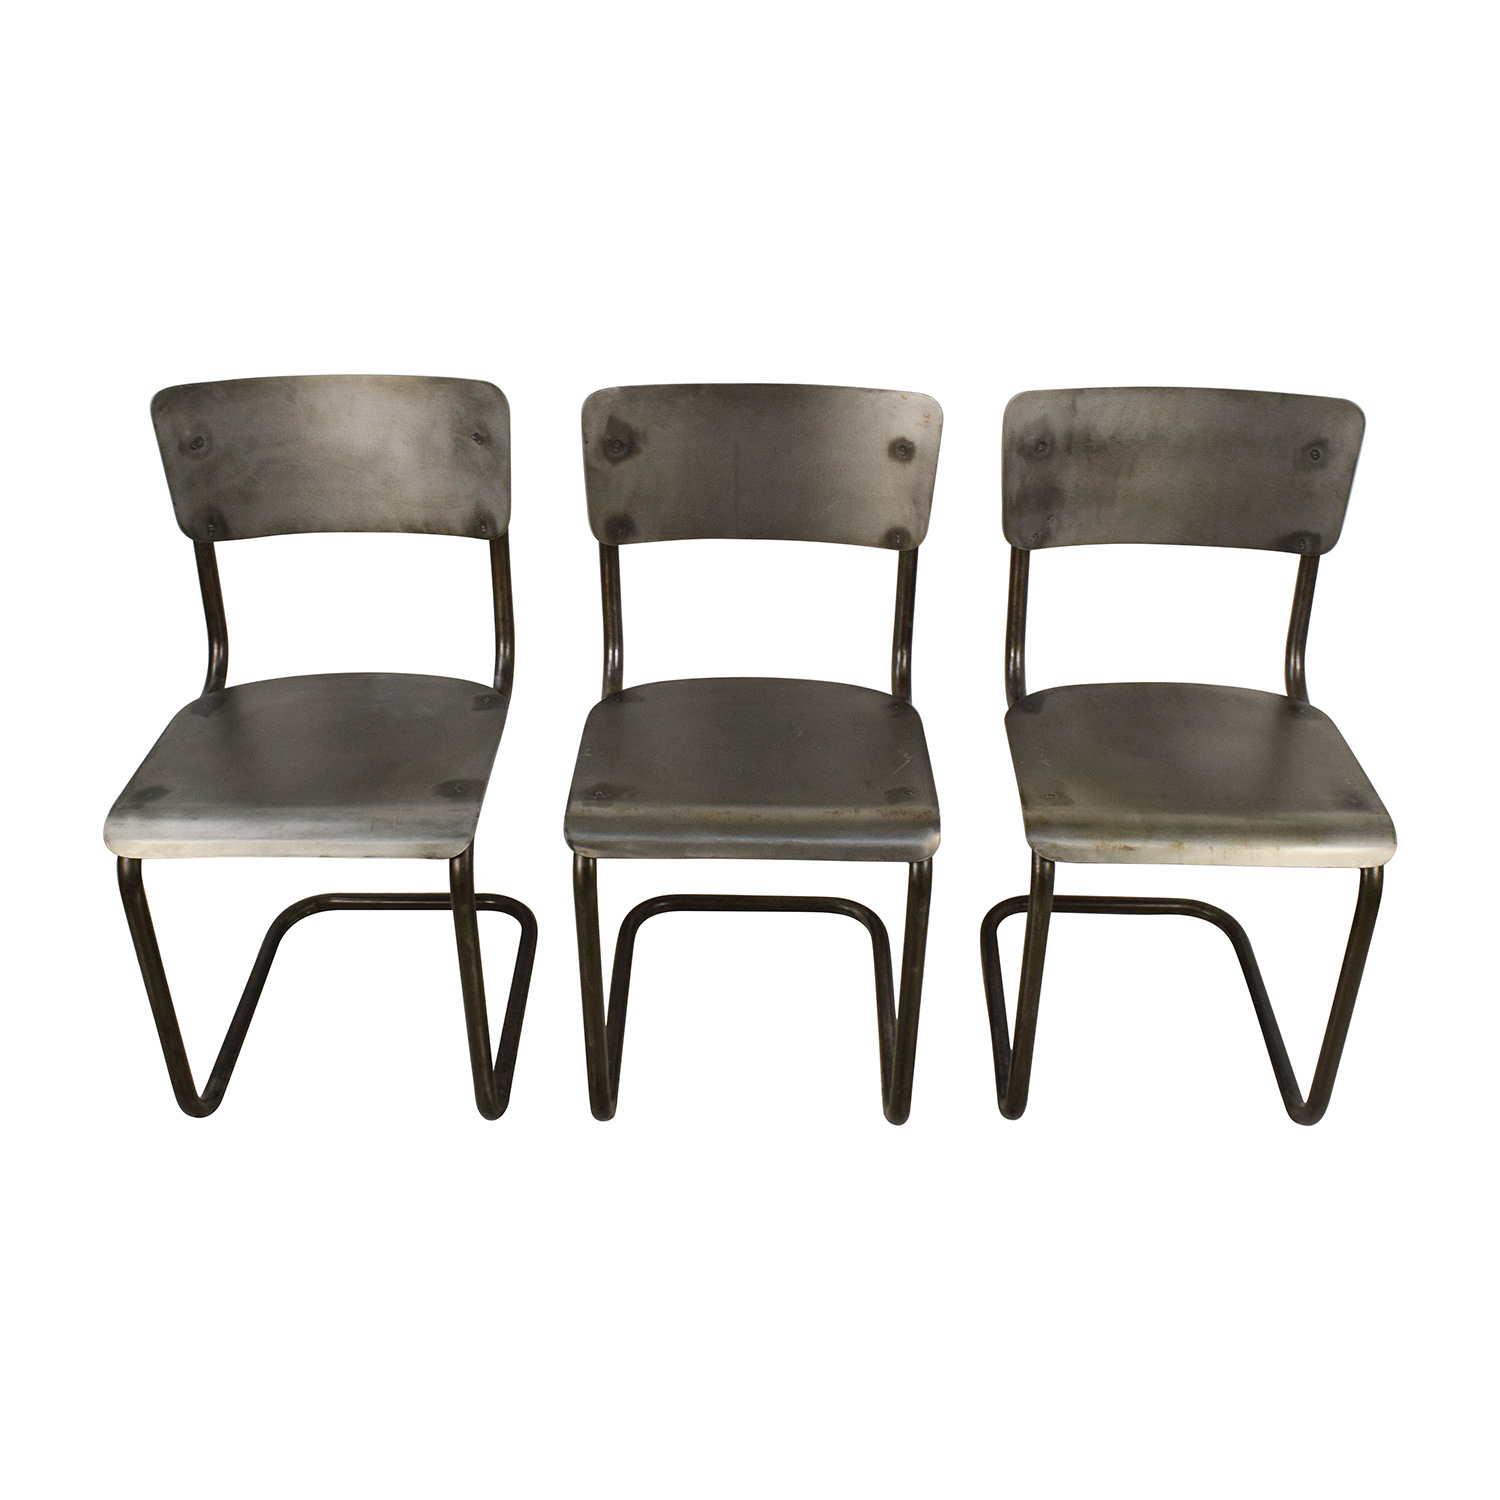 buy  Industrial Style Metal Chair Set online